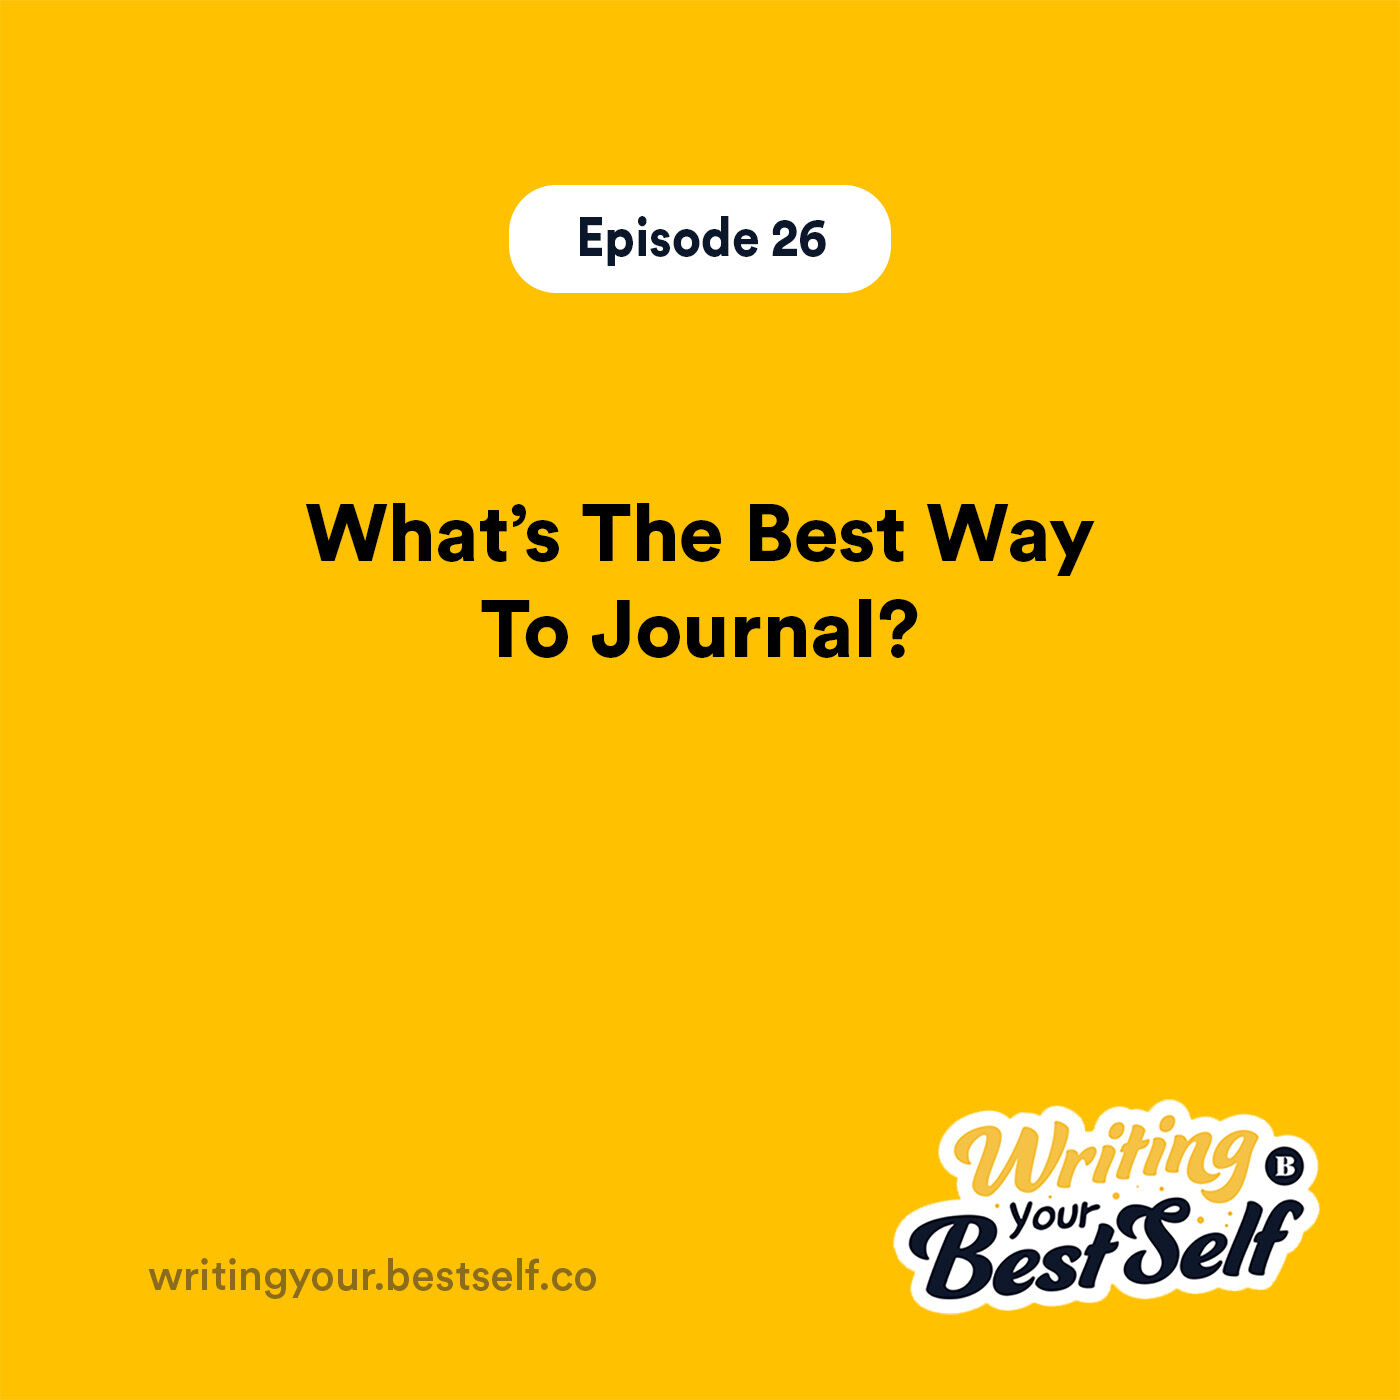 What's The Best Way To Journal?